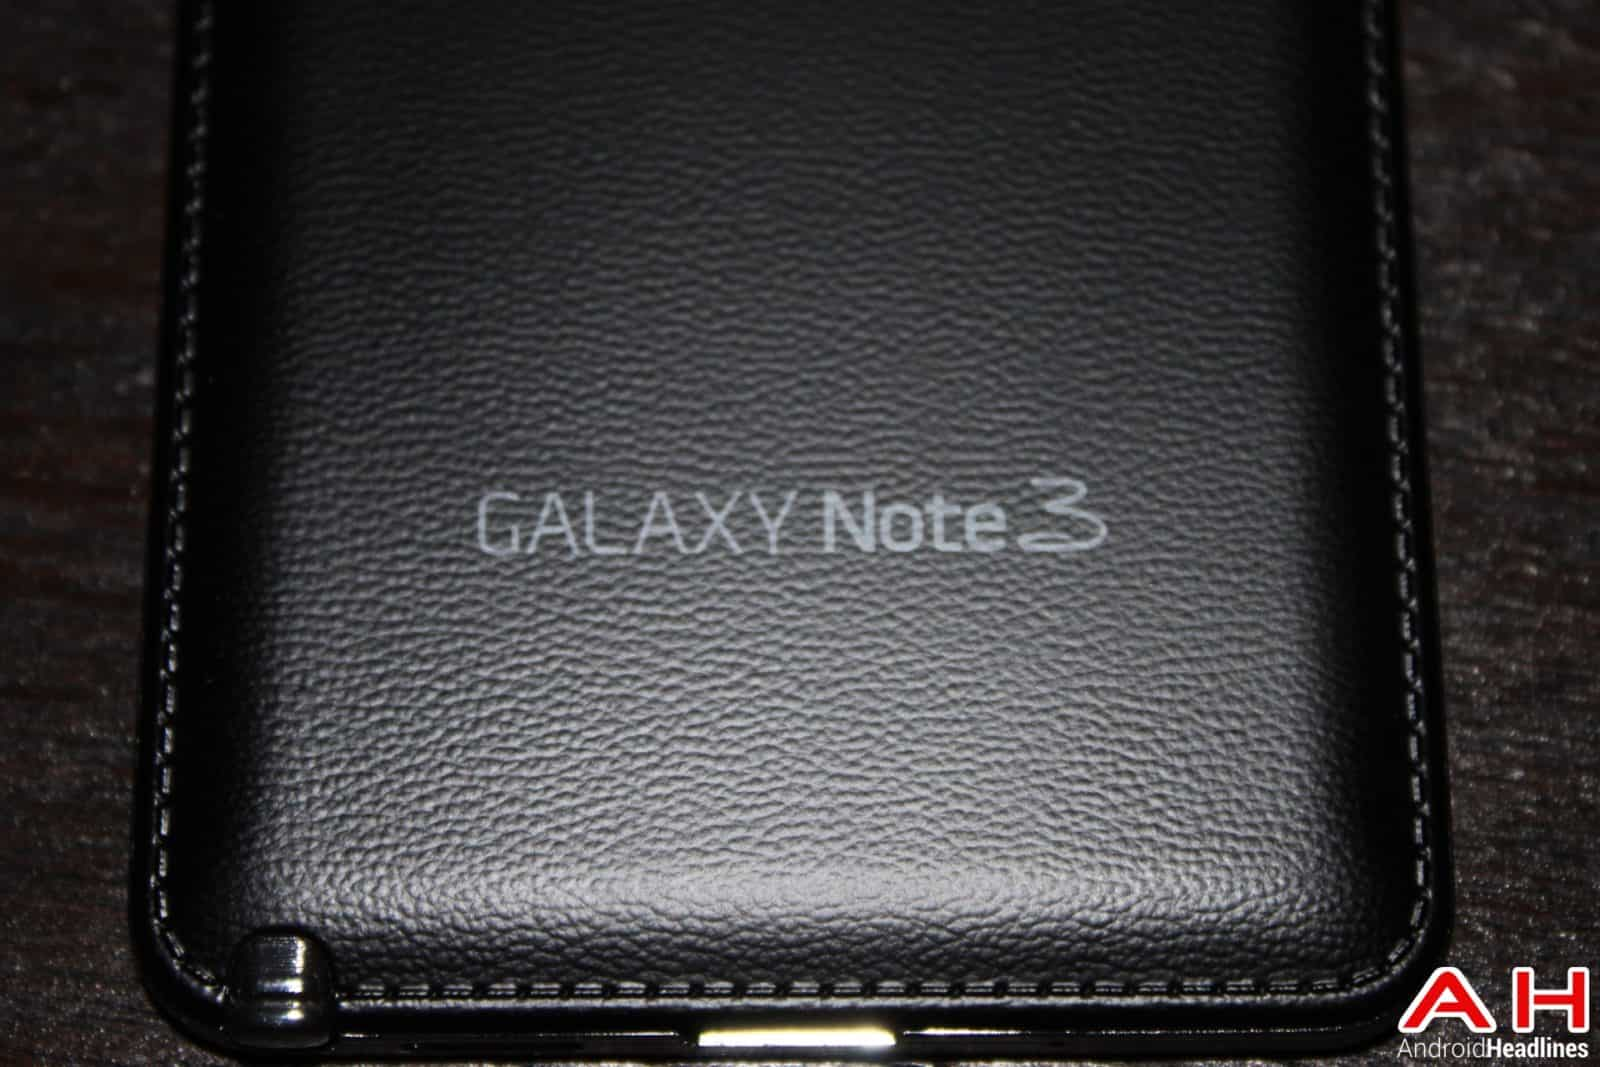 Samsung galaxy note 3 android 5 0 lollipop update leaks - T Mobile Us Released Android 5 0 Lollipop For The Samsung Galaxy Note 3 Today